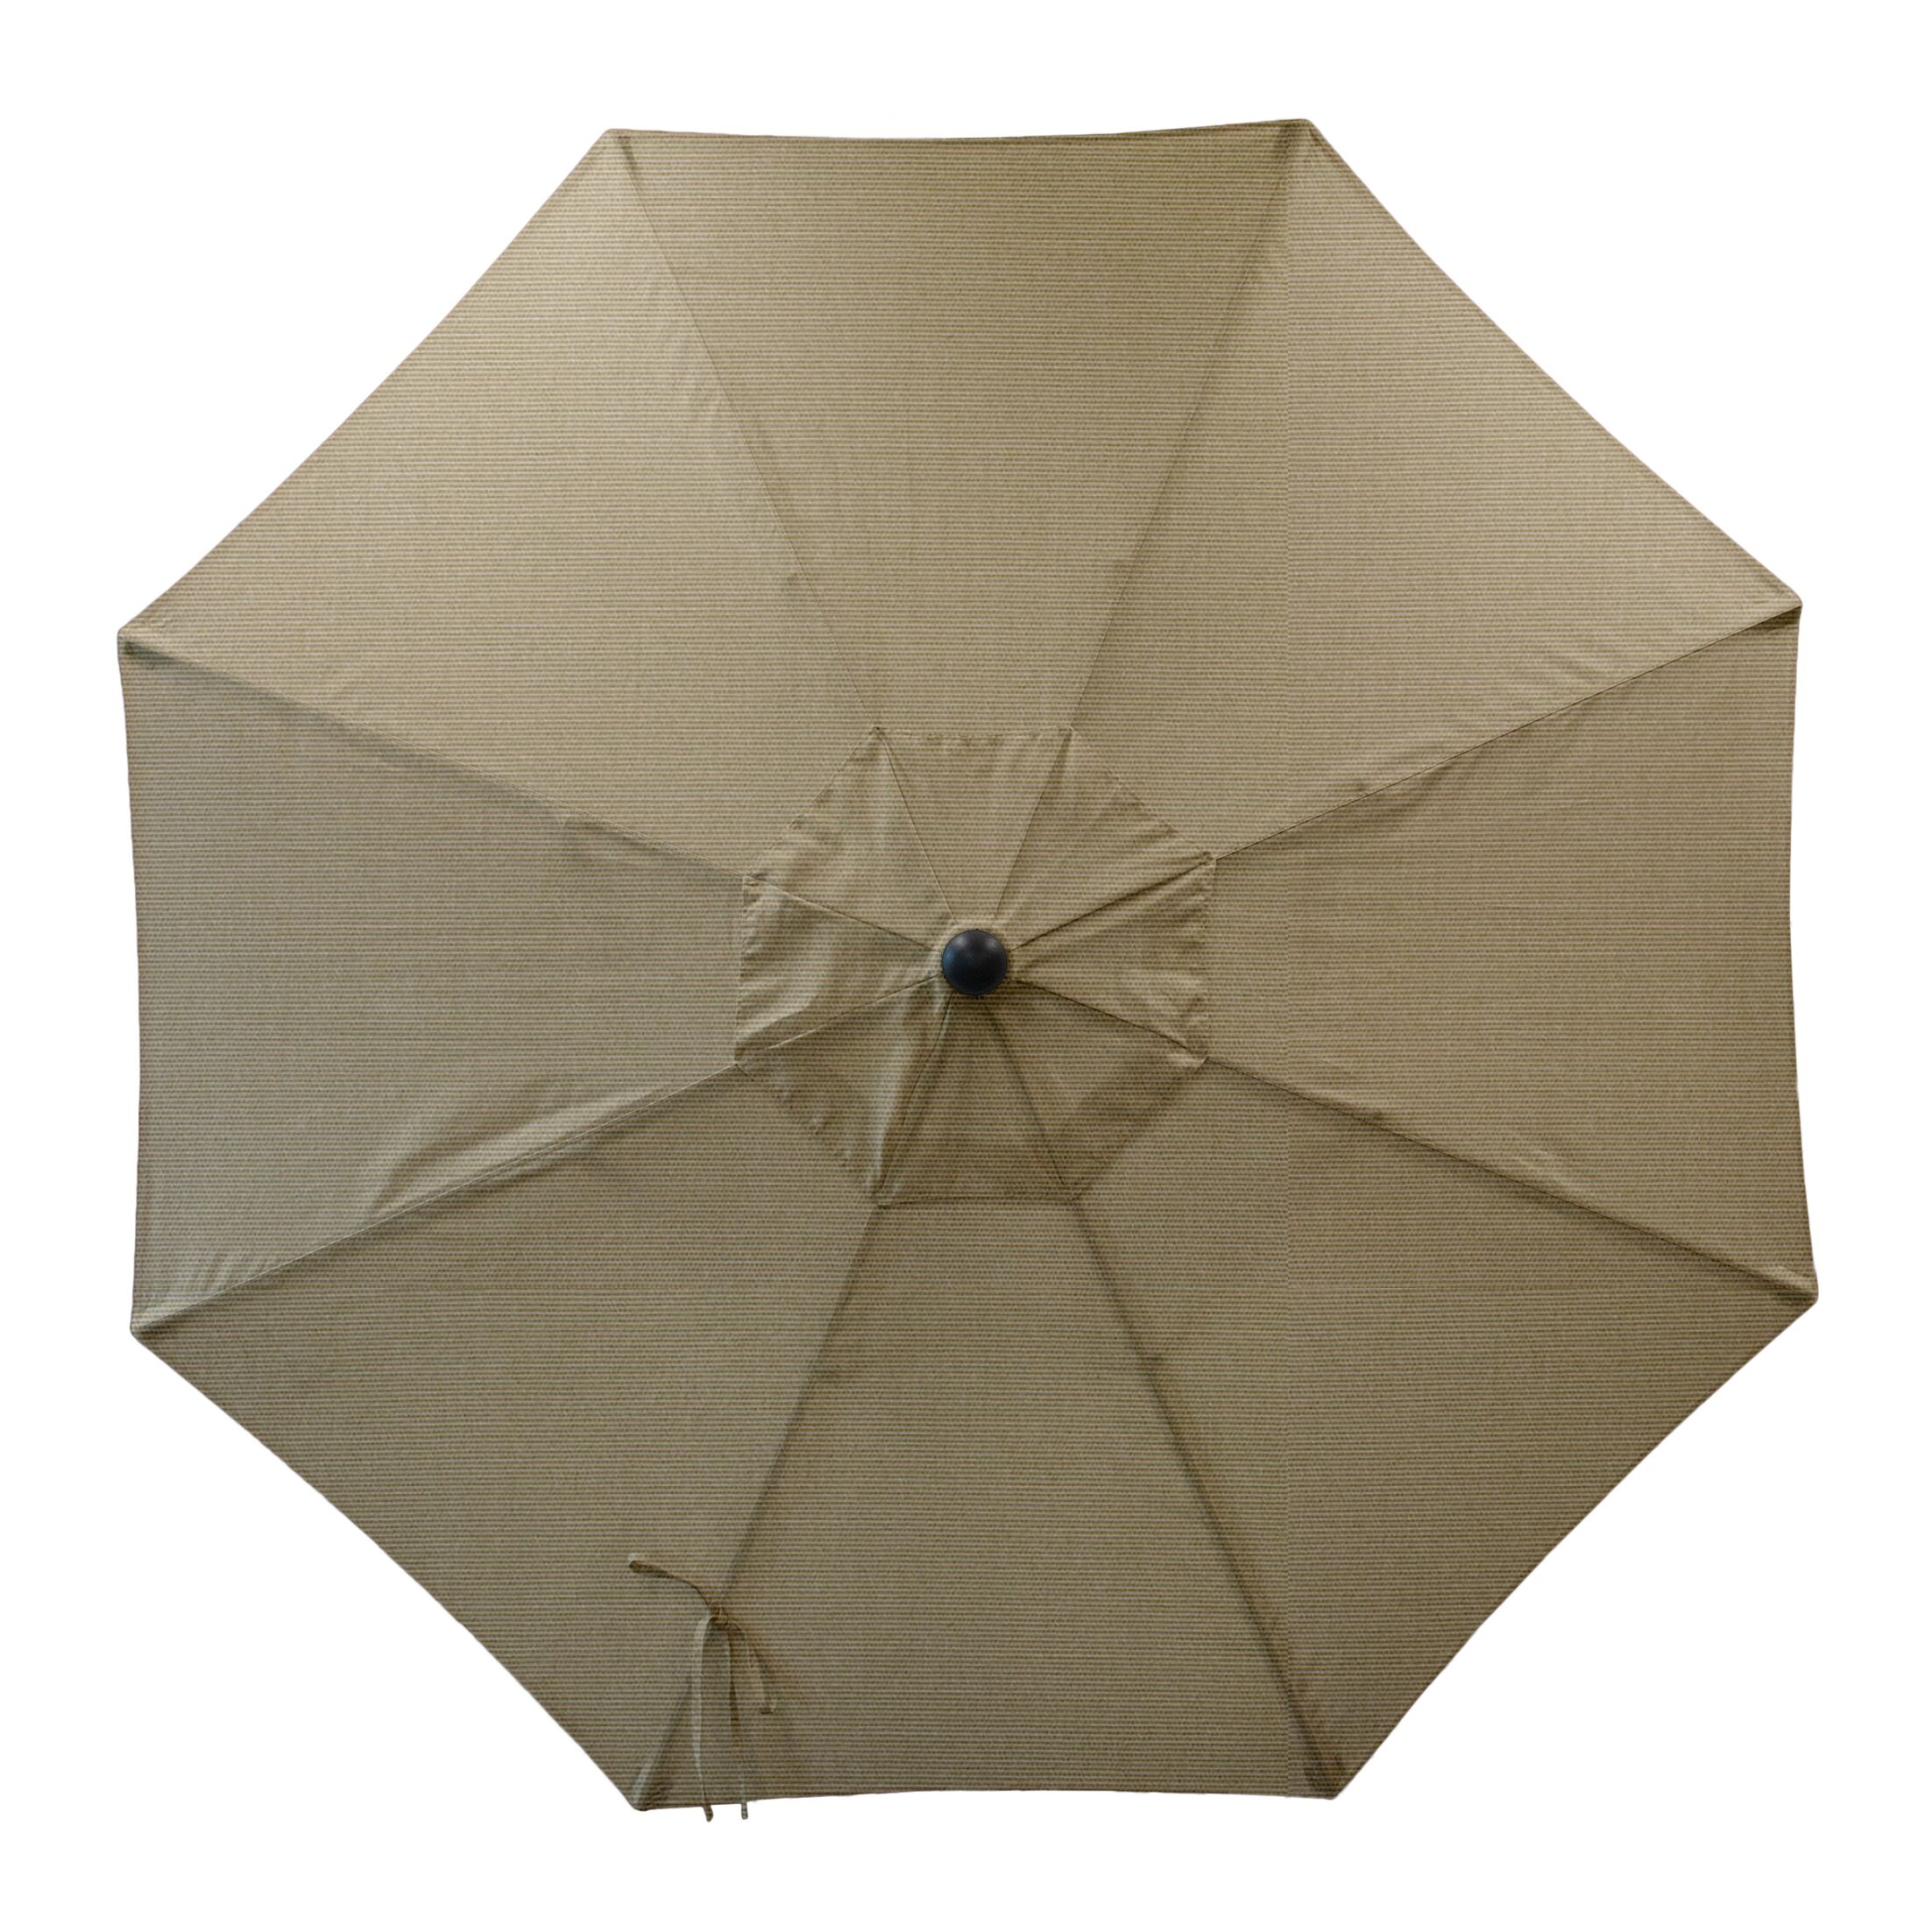 Centeno Double Pulley 9' Market Sunbrella Umbrella Fabric Color: Antique Beige, Frame Color: Silver Mirror